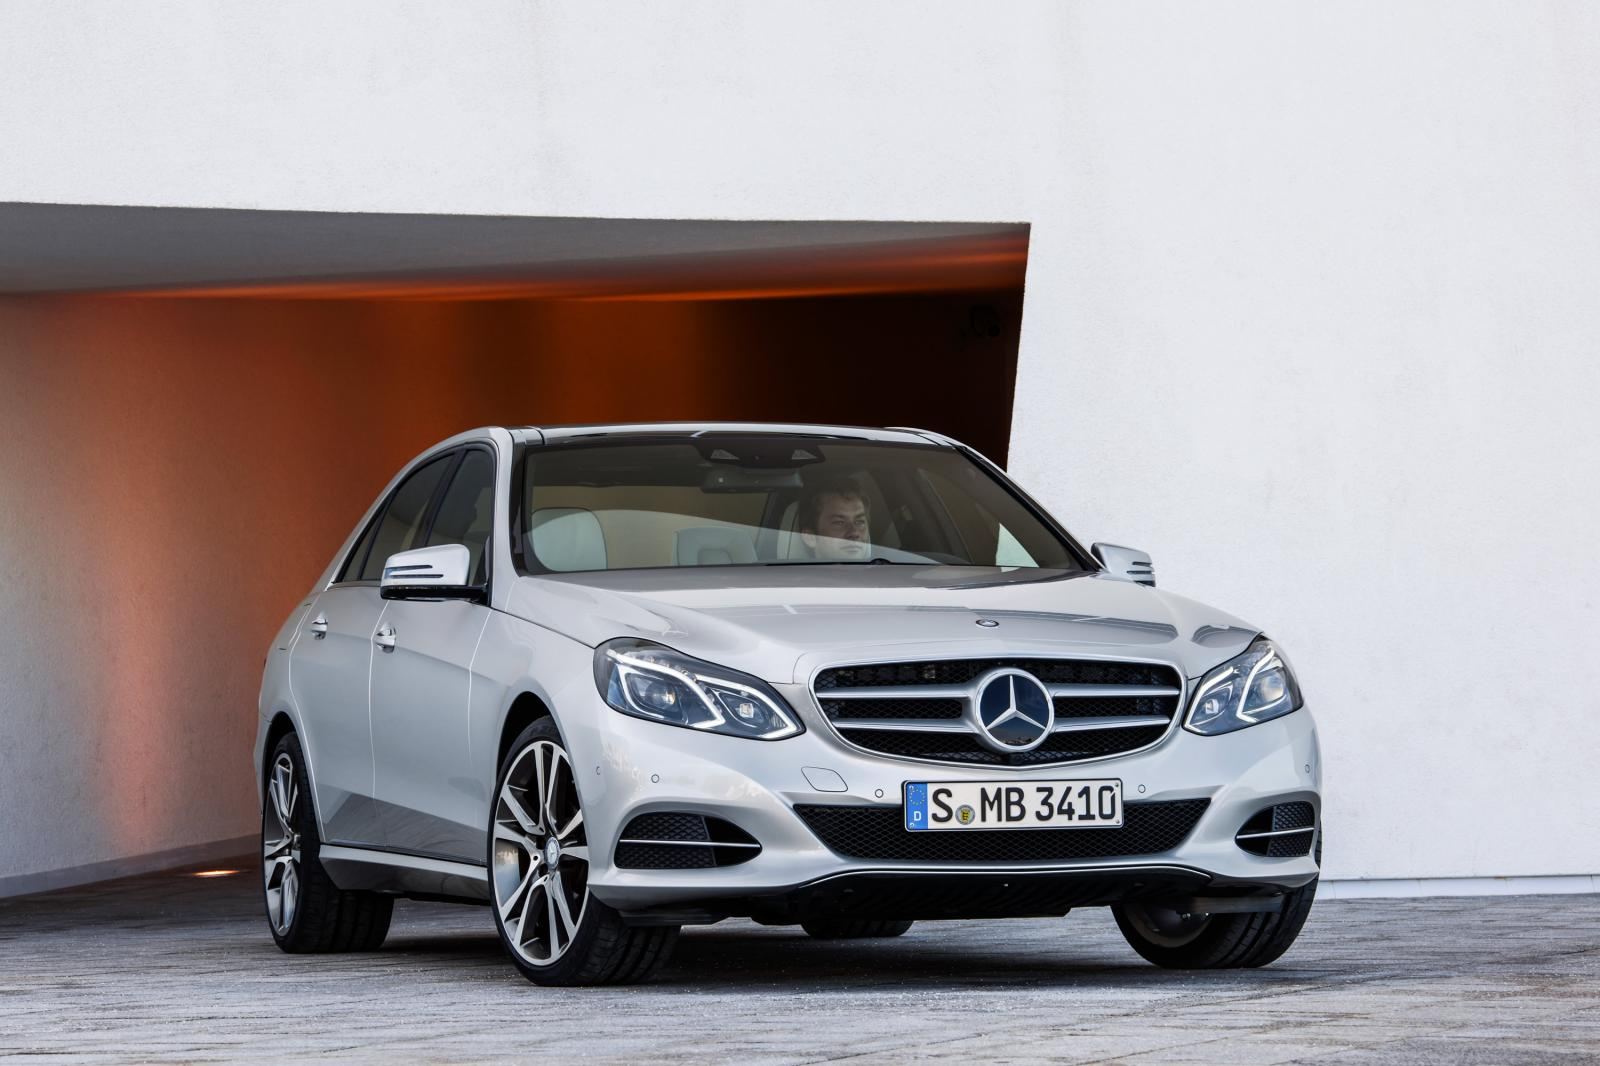 2014 mercedes benz e class facelift revealed autoevolution. Black Bedroom Furniture Sets. Home Design Ideas